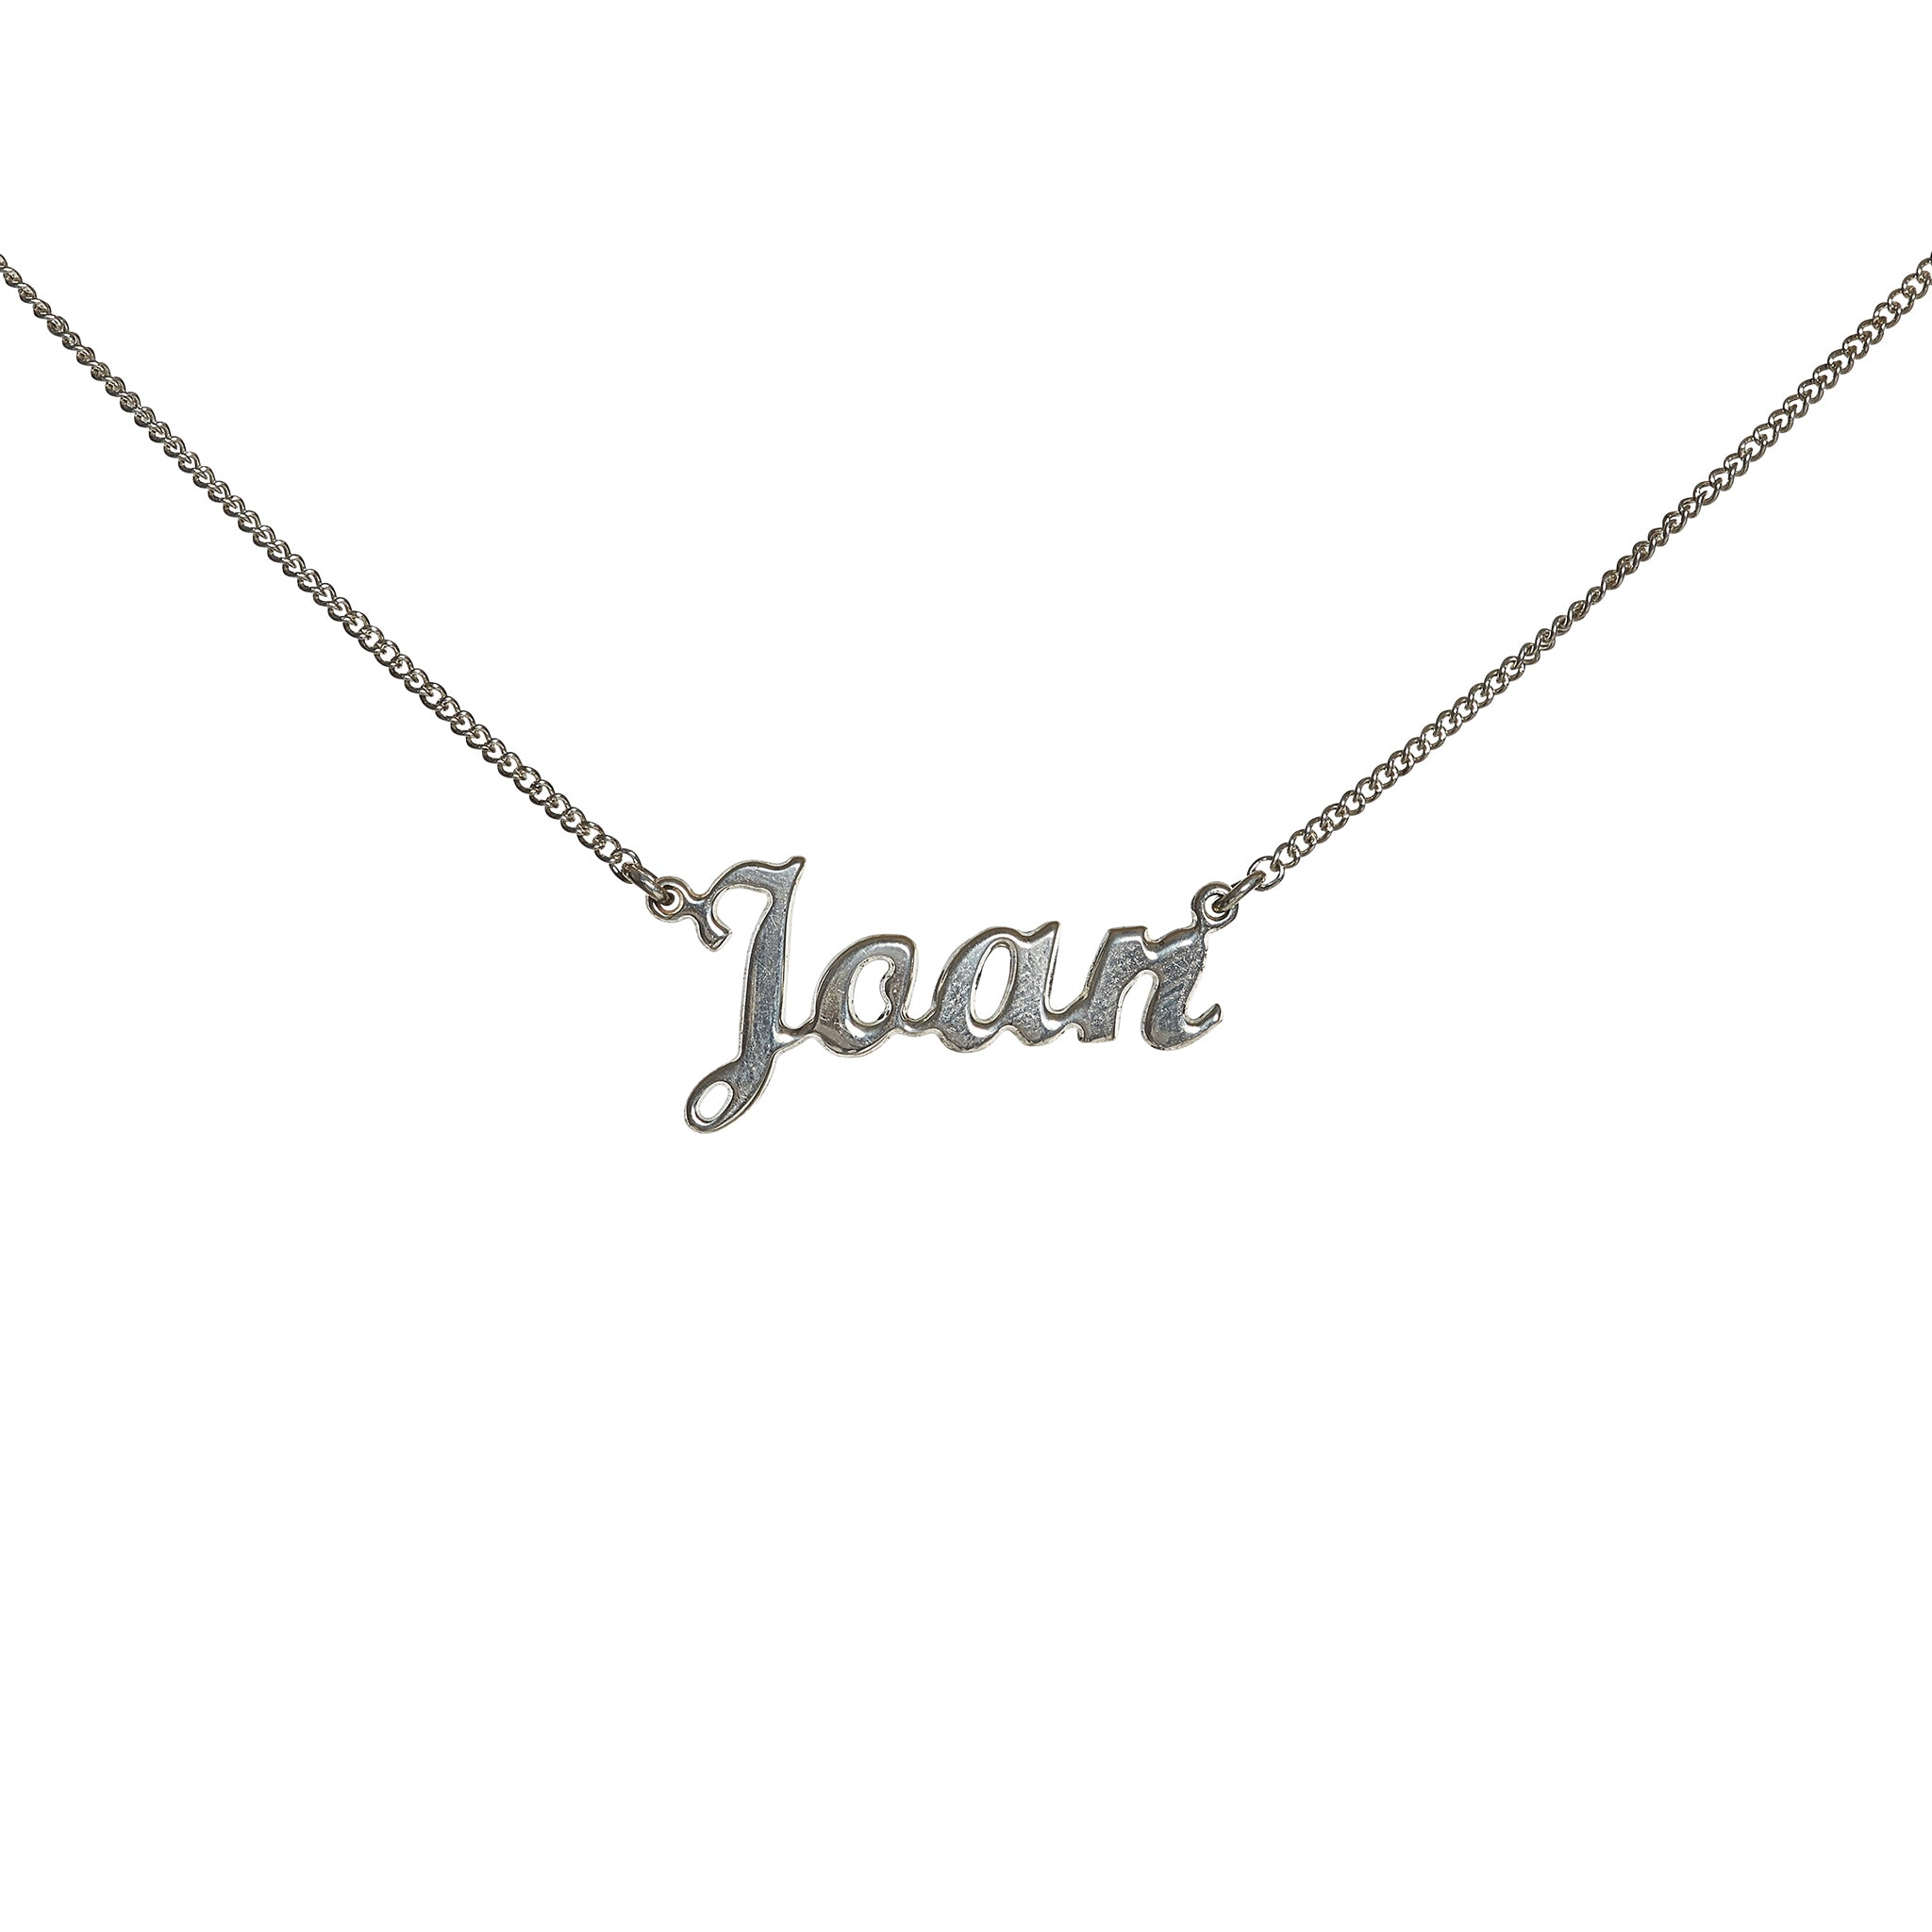 Custom Handcrafted Nameplate Necklace